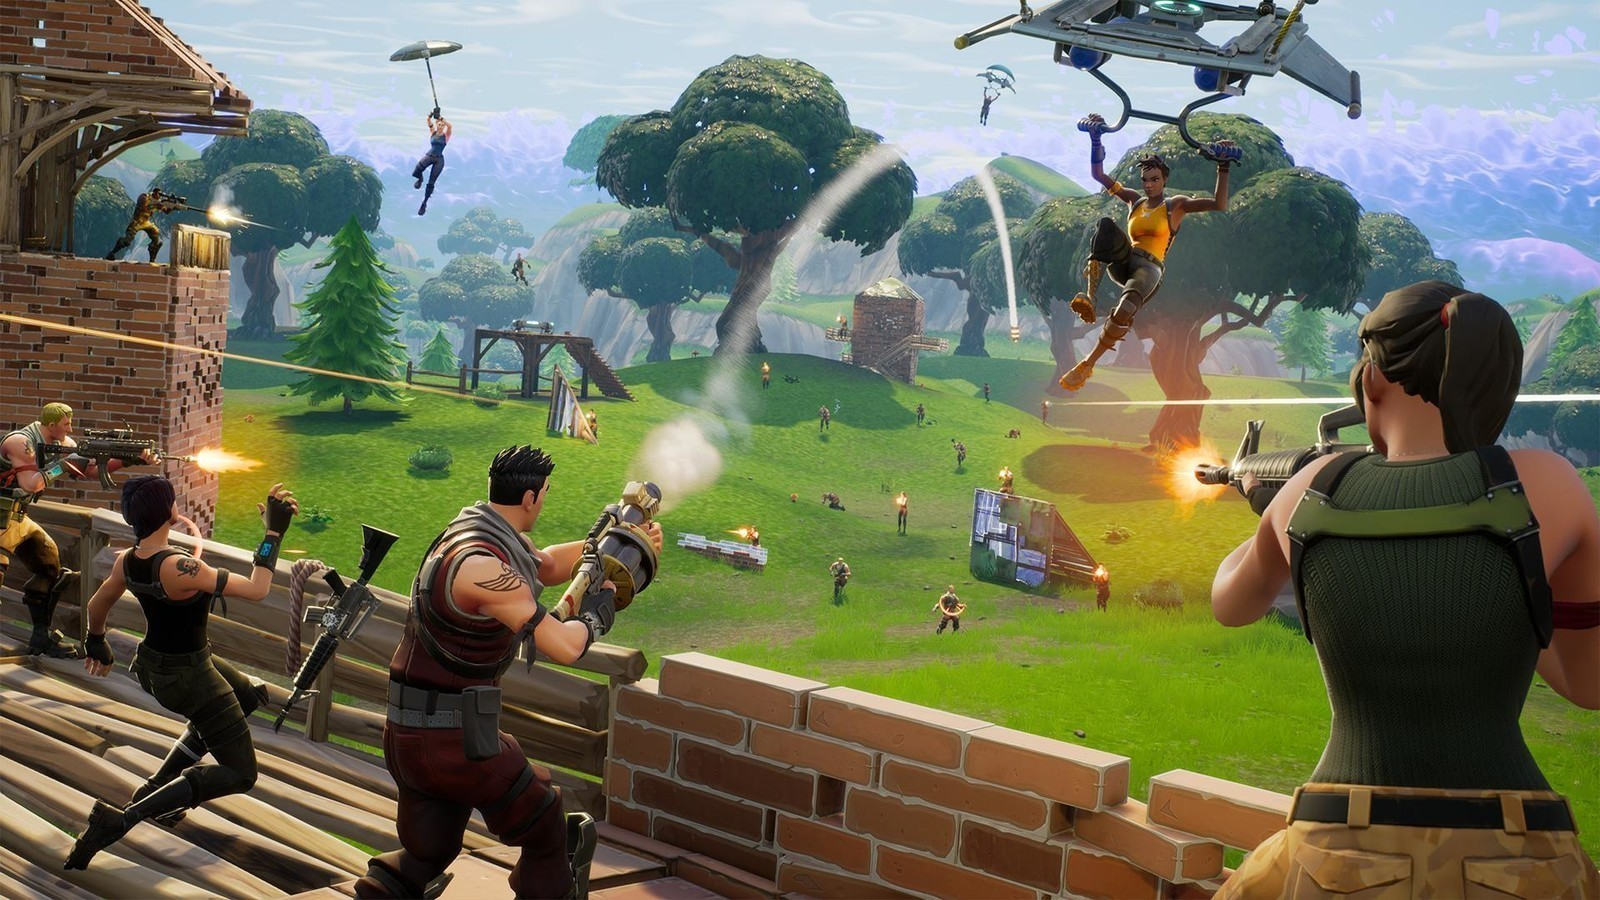 Fortnite xbox games for kids and elder